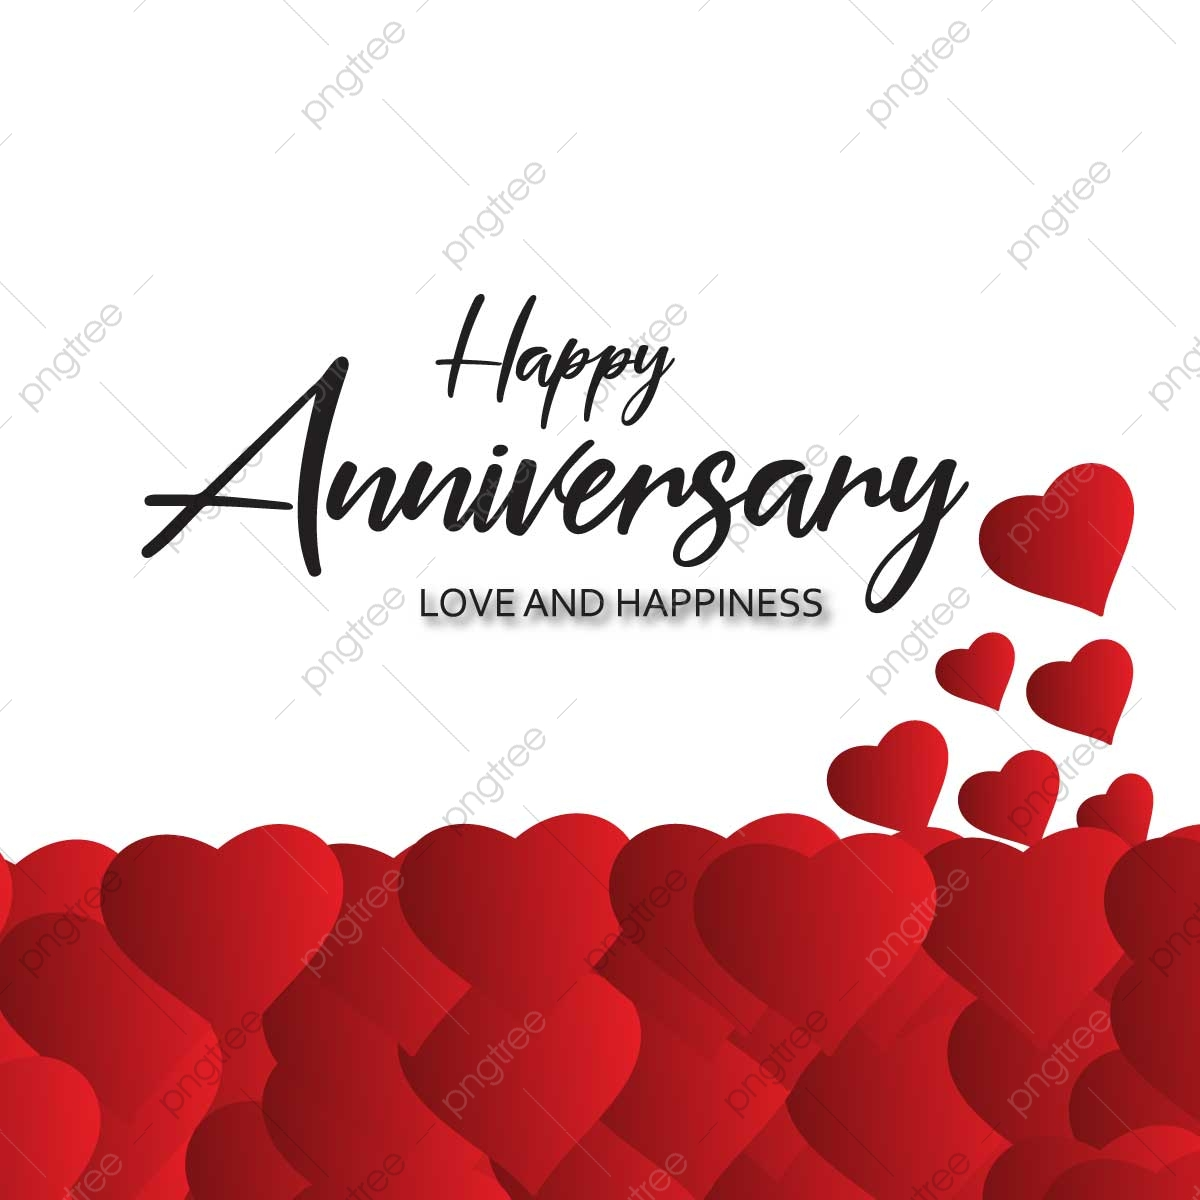 Happy Anniversary Love And Happiness Love Icons Happy Icons Happiness Icons Png And Vector With Transparent Background For Free Download